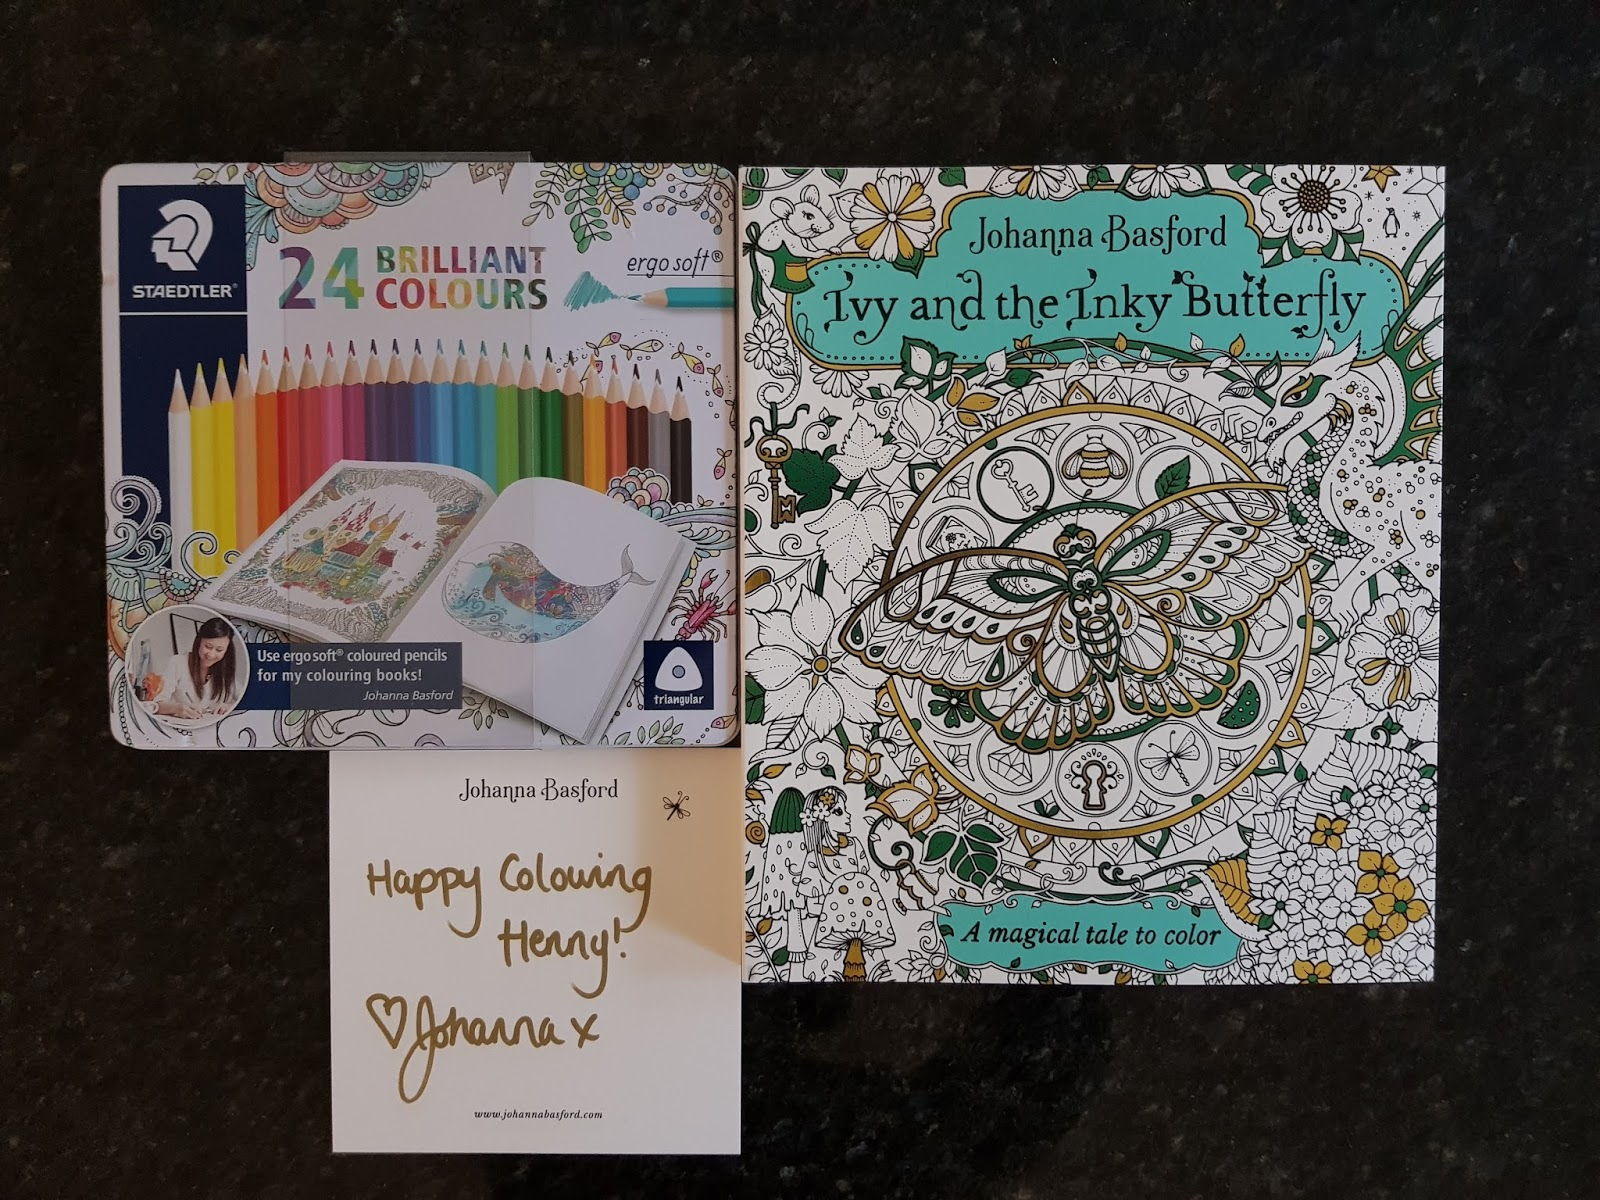 A Couple Of Days Ago Package Came In The Mail With Johanna Basfords Latest Book Ivy And Inky Butterfly Was So Generous To Also Send Me